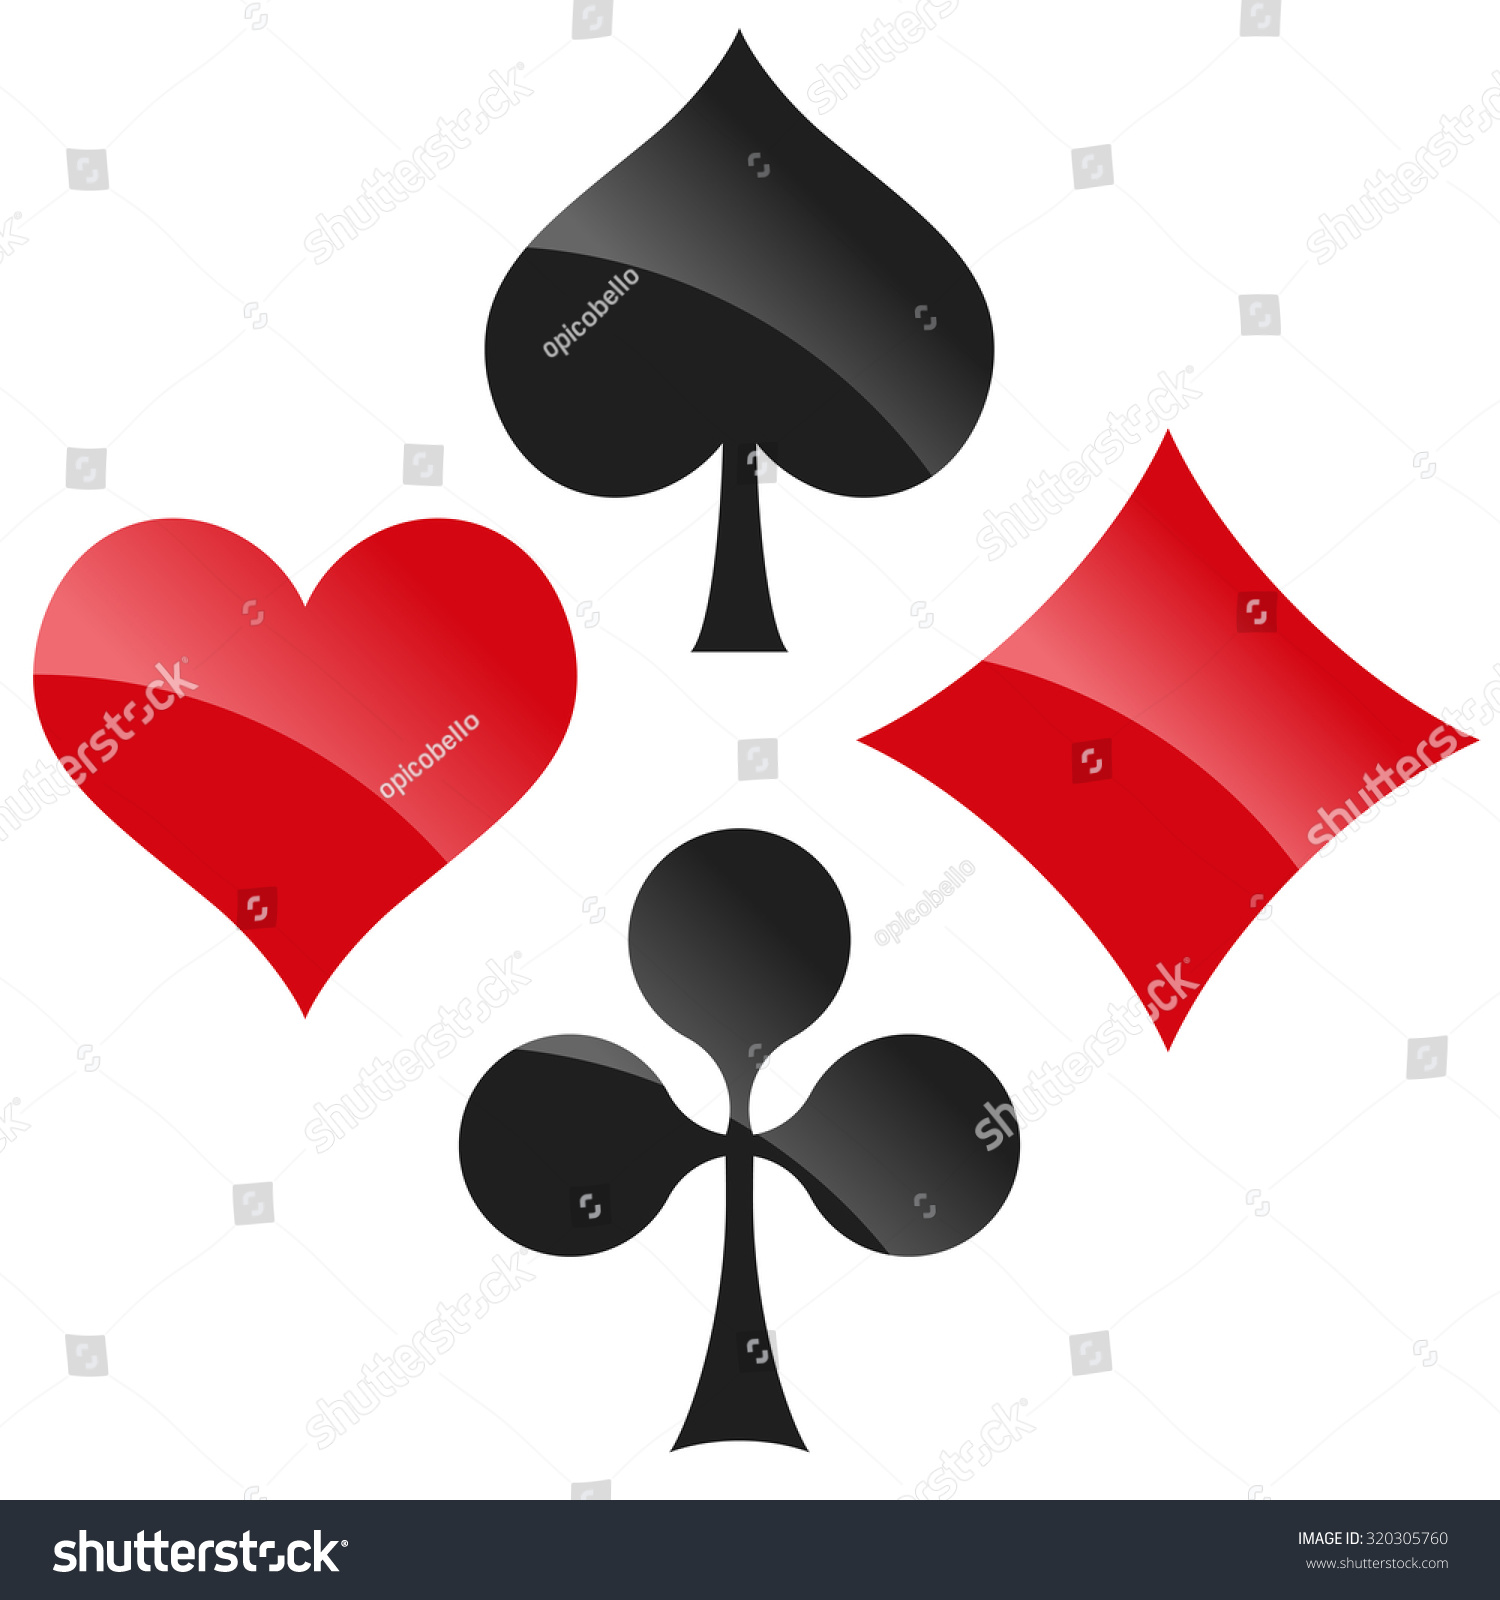 French Playing Cards Symbols Hearts Tiles Stock Vector ...